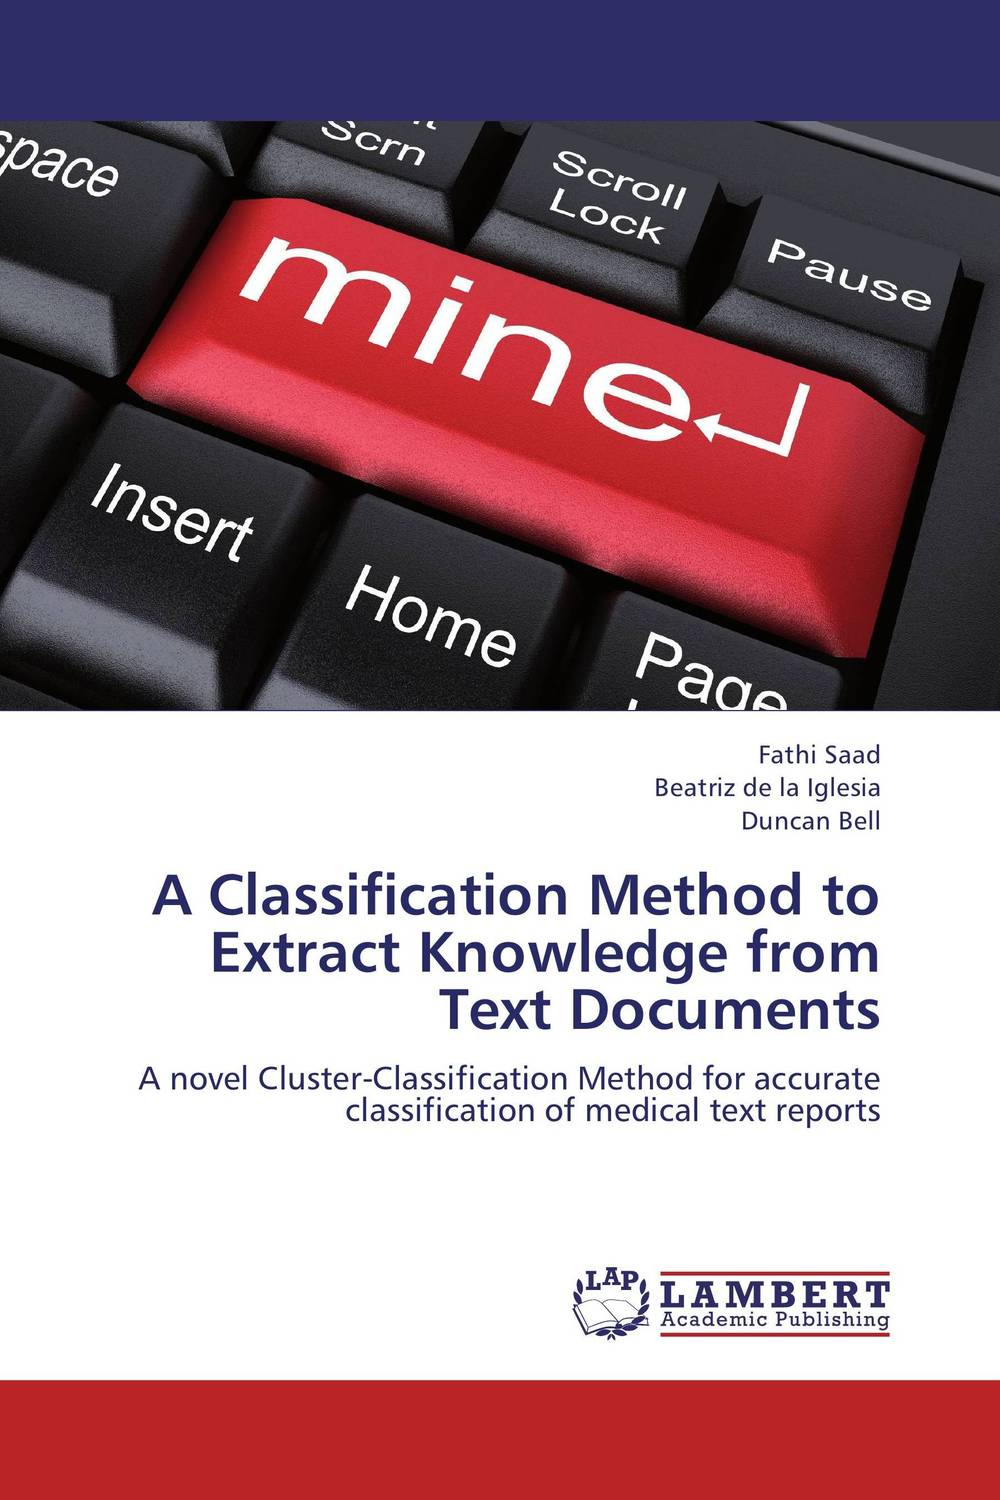 A Classification Method to Extract Knowledge from Text Documents clustering and classification methods used in biosequence analysis